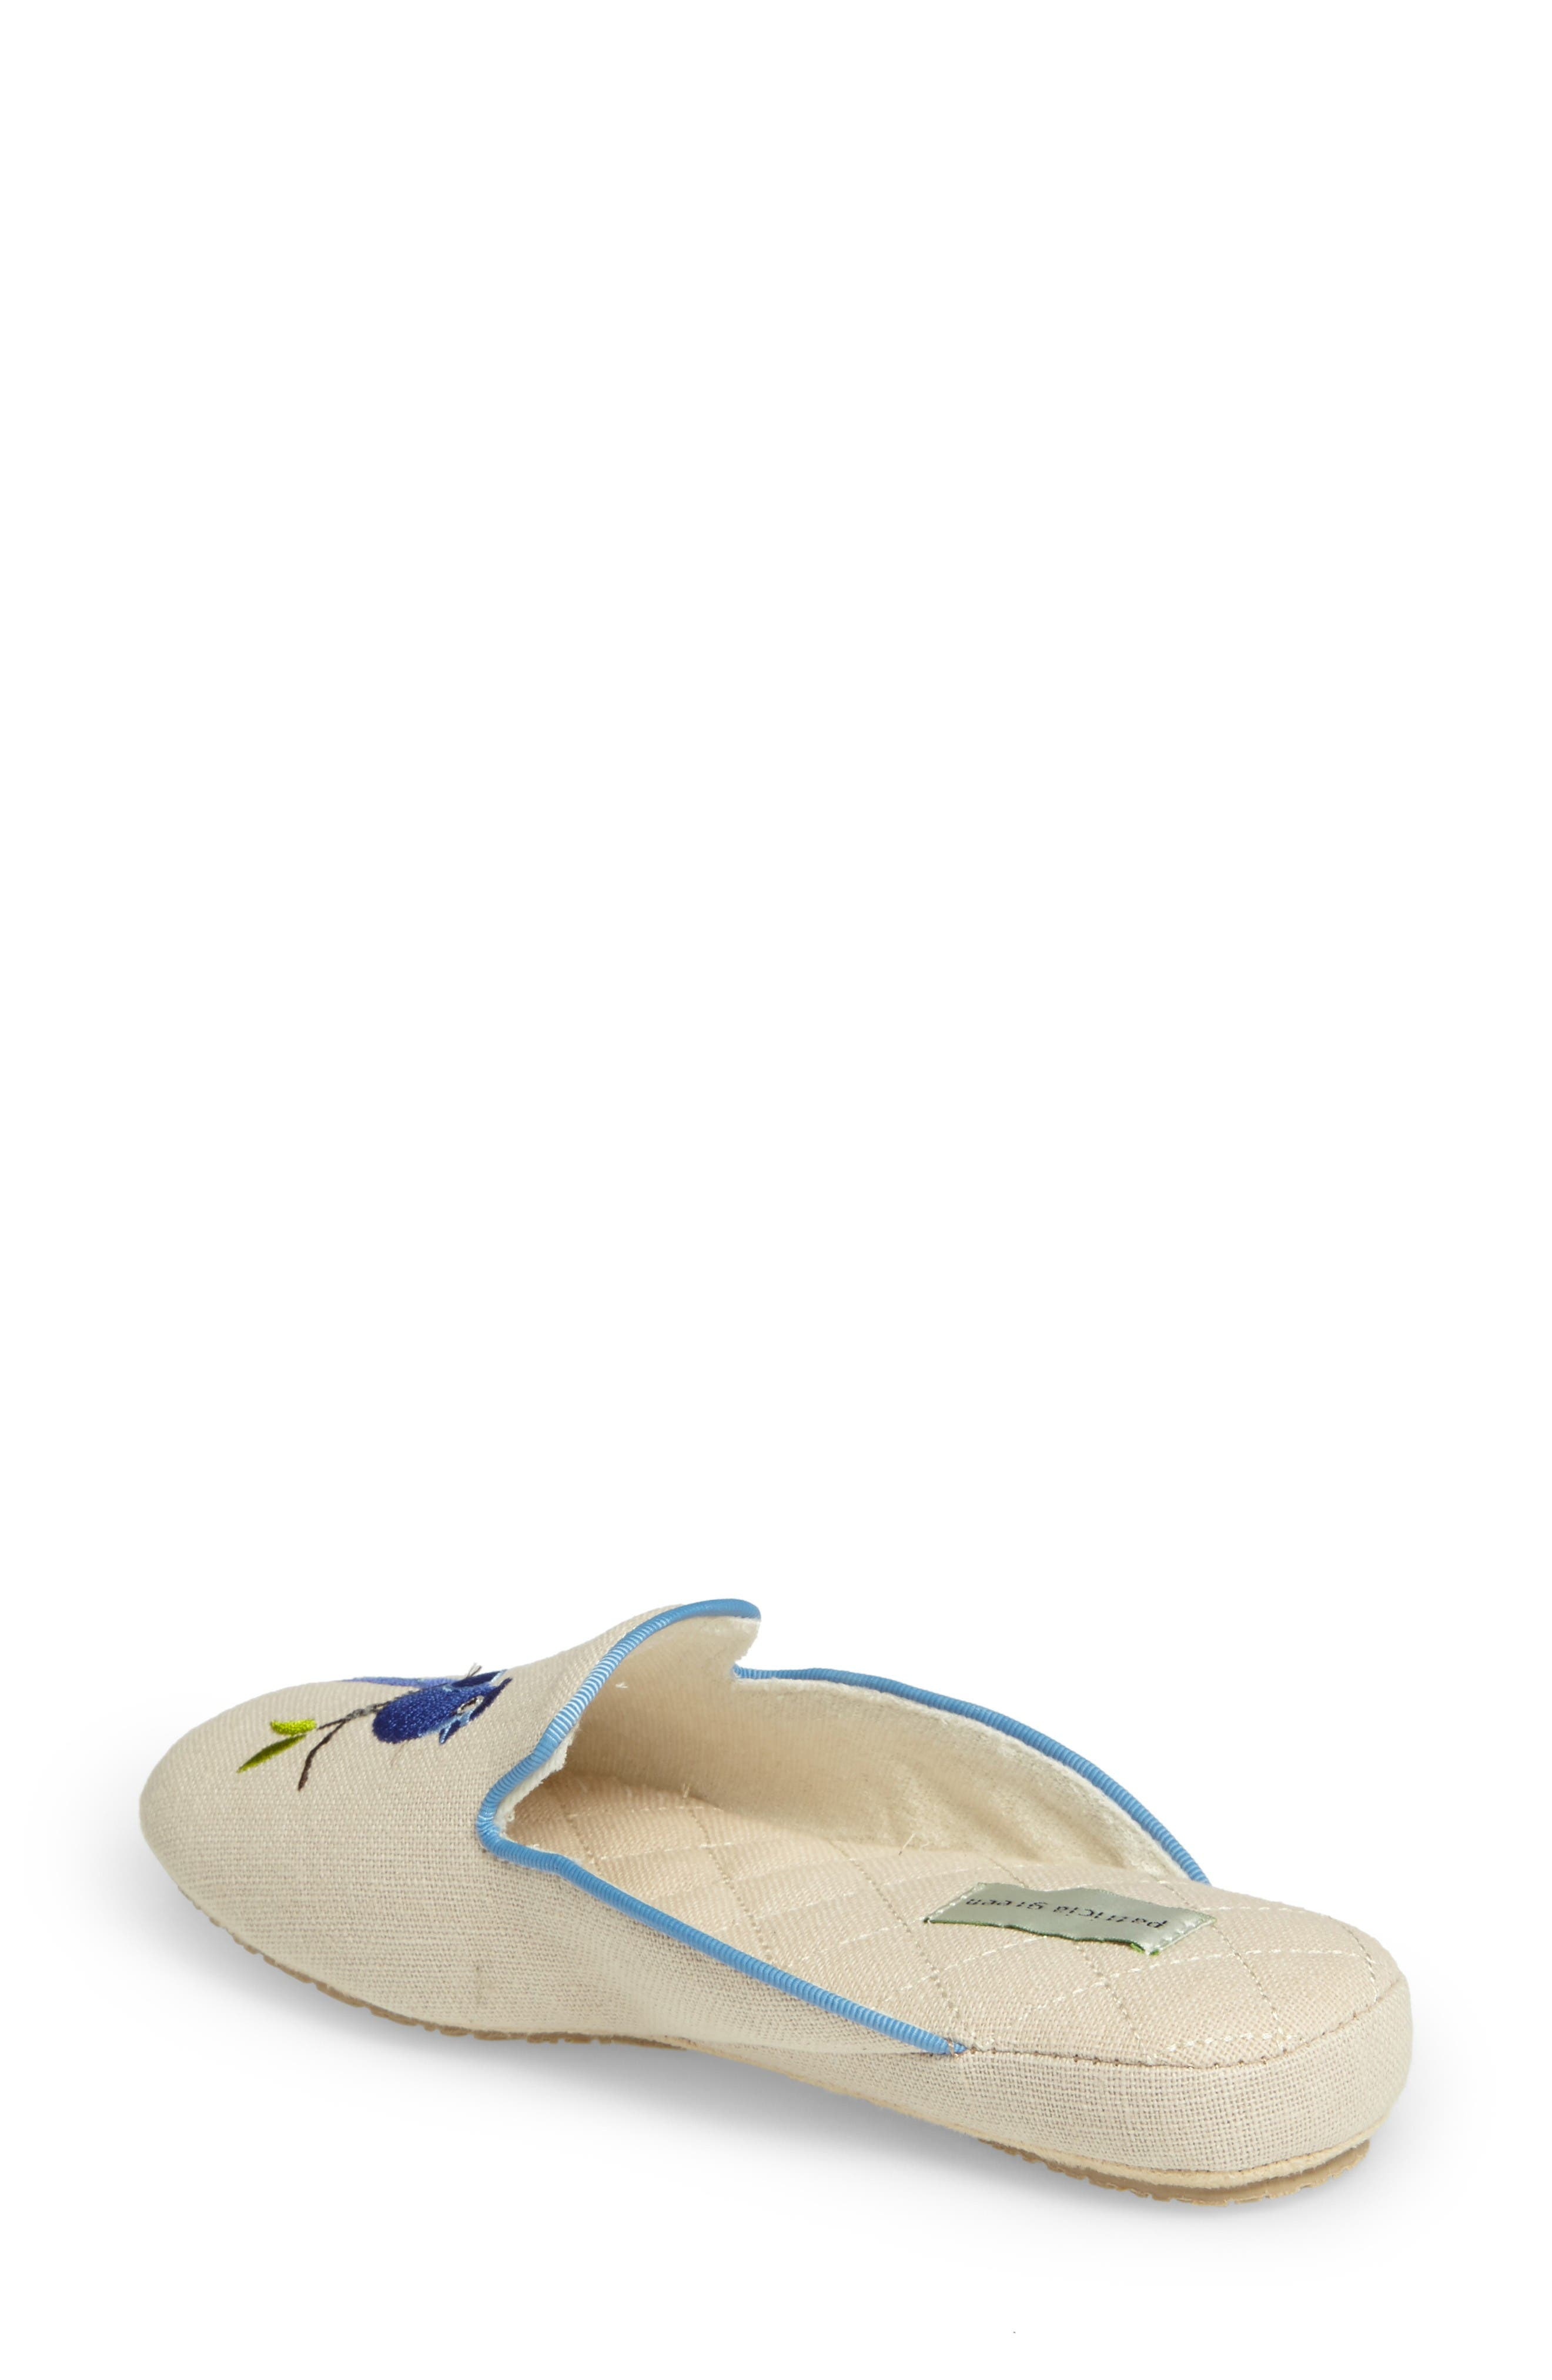 Bluebird Embroidered Slipper,                             Alternate thumbnail 2, color,                             Natural Fabric